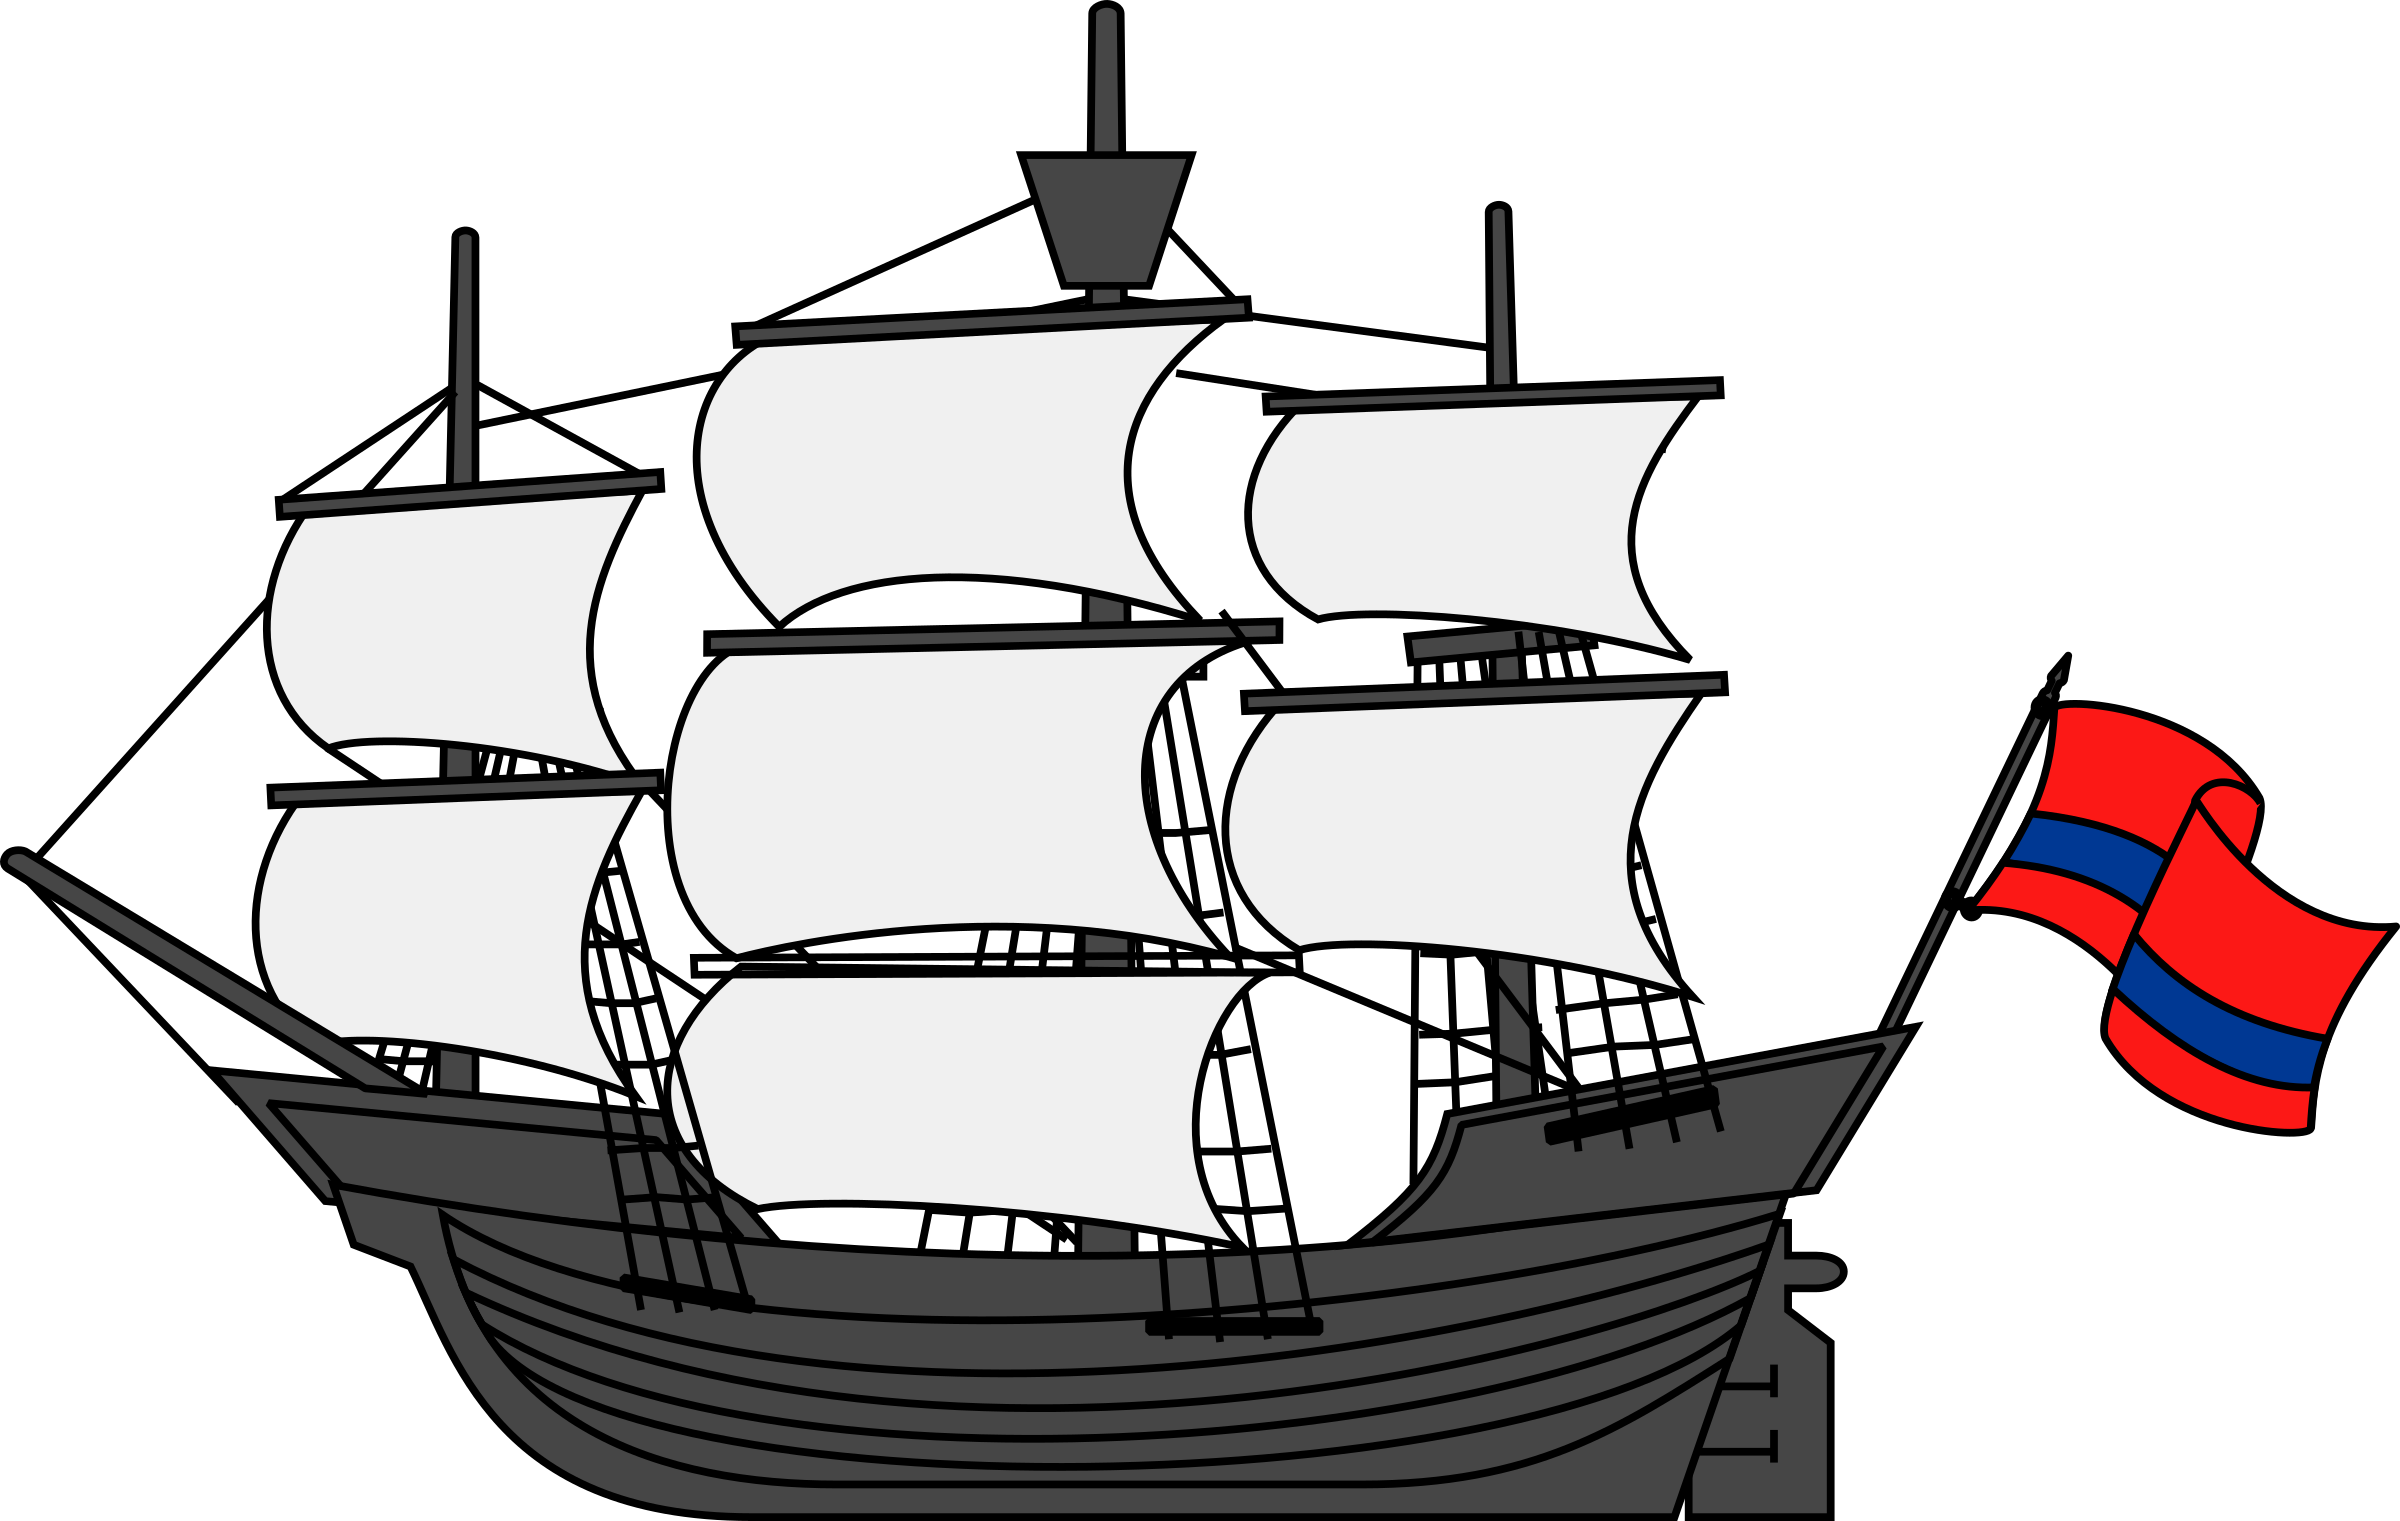 Sailing icons png free. Sail clipart tall ship clip royalty free stock